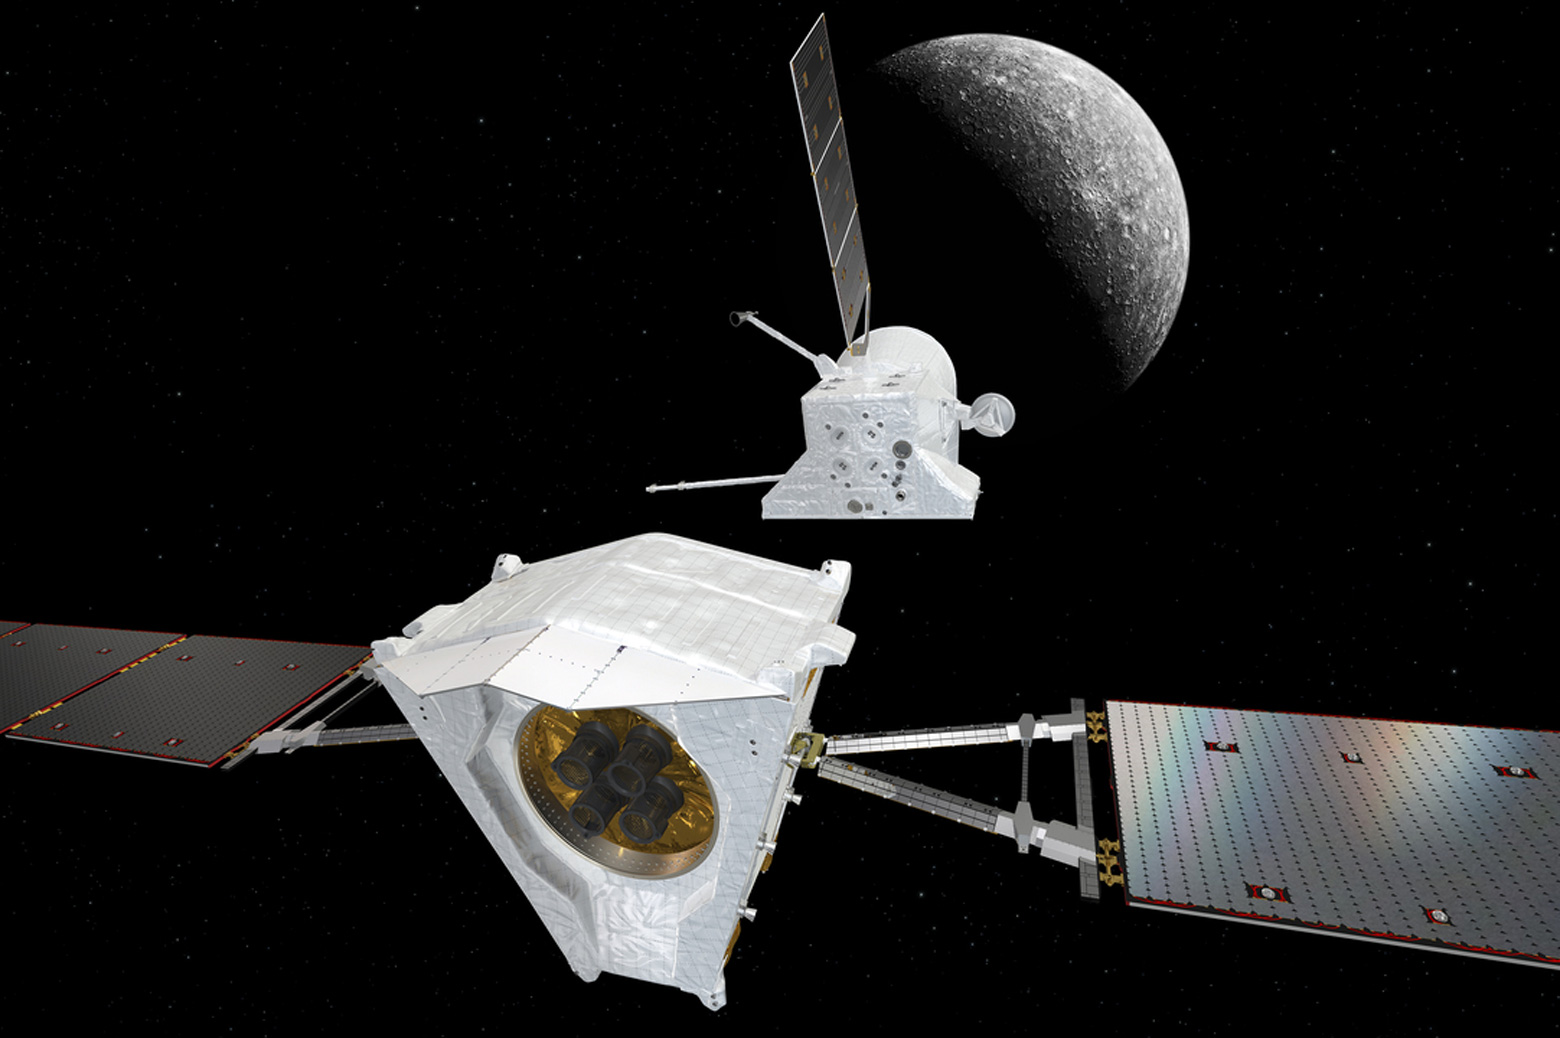 The Mercury Transfer Module separates from the BepiColombo Mercury Planetary Orbiter (MPO) and Mercury Magnetospheric Orbiter (MMO) composite spacecraft.